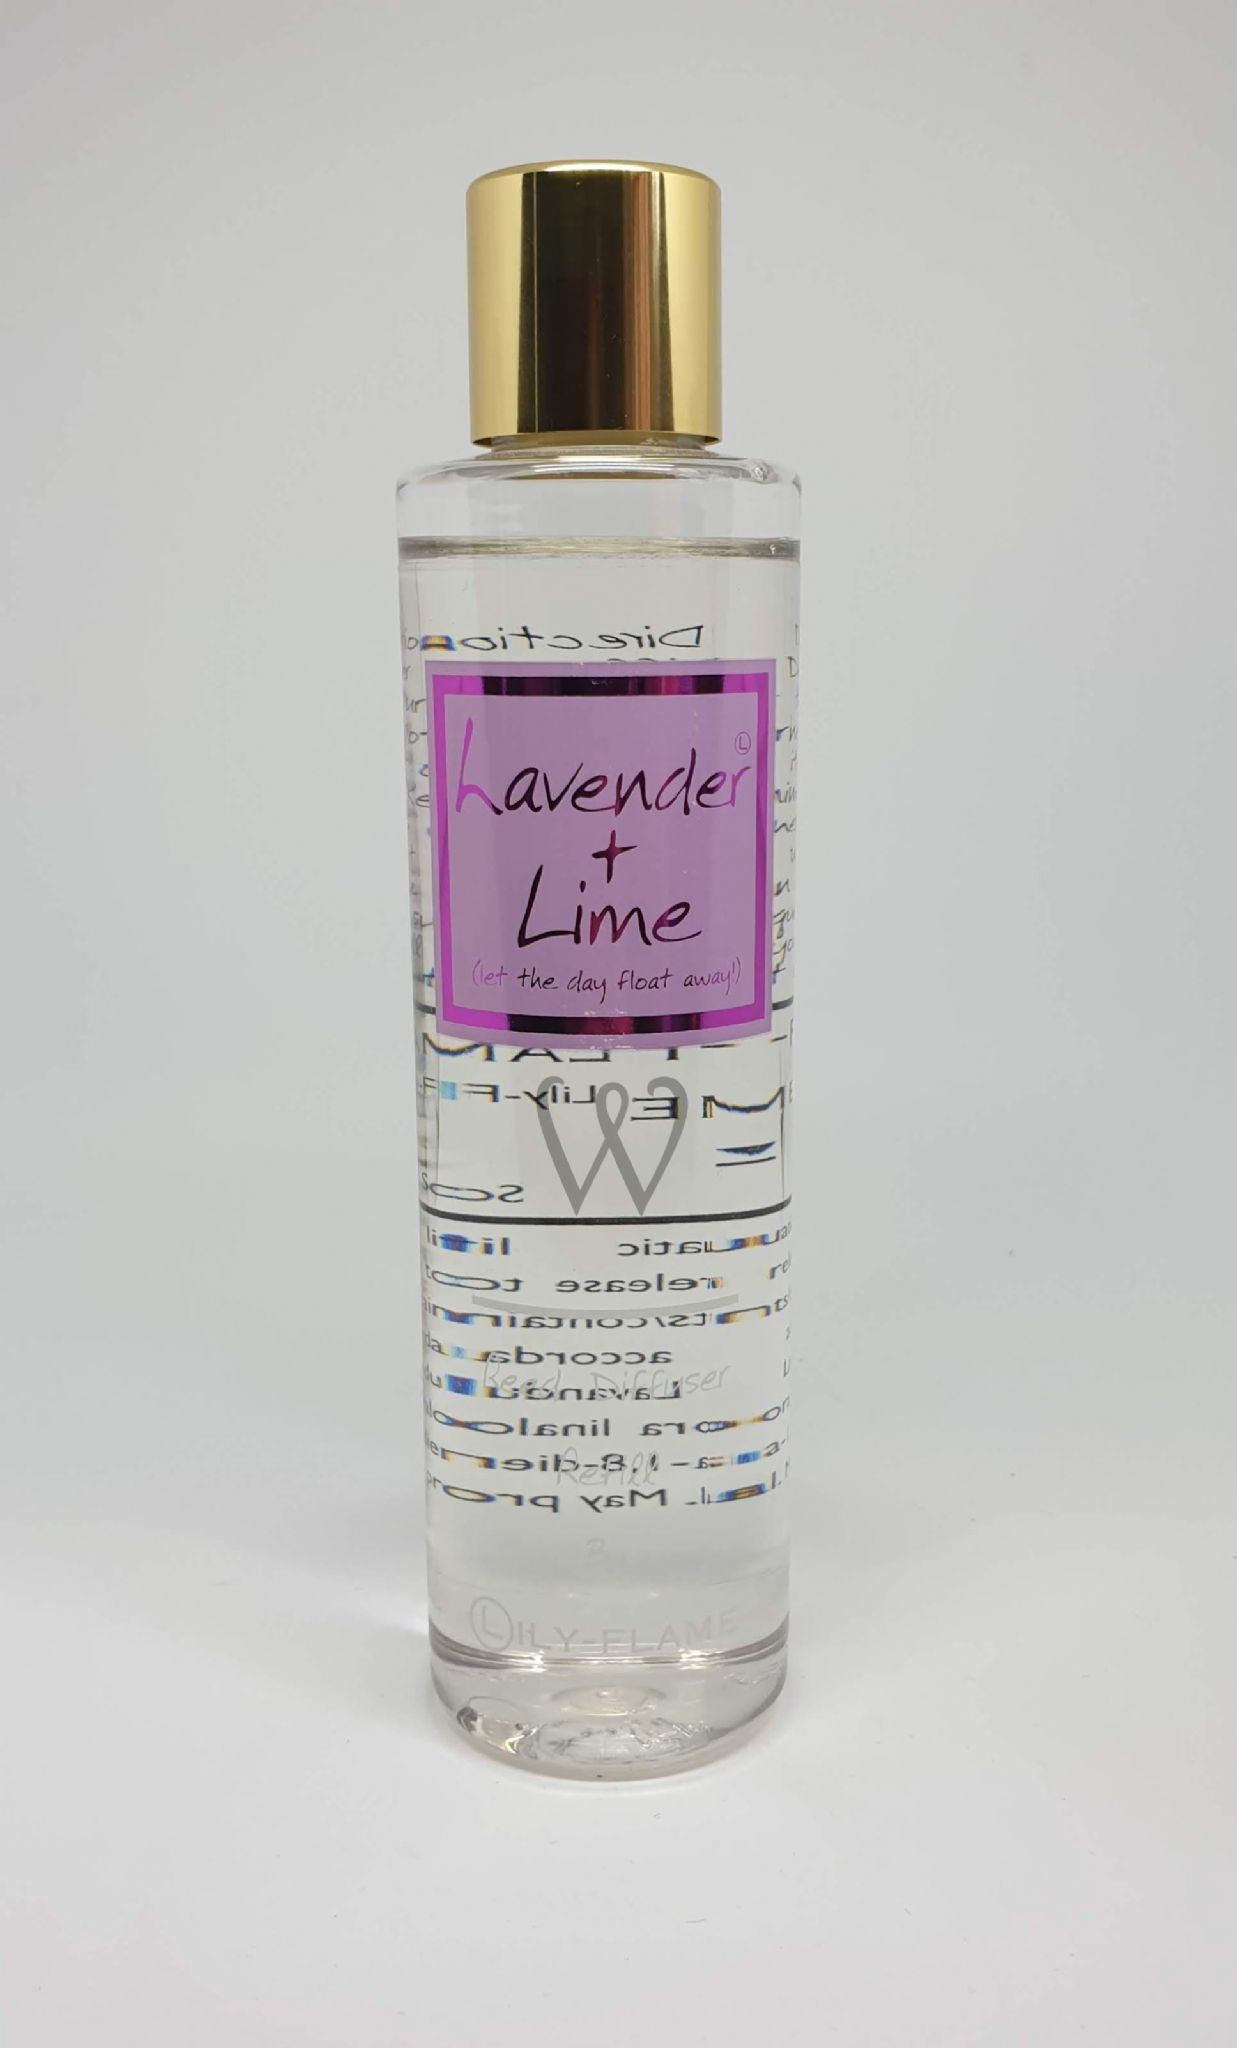 Lily flame reed diffuser refill - LAVENDER & LIME 200ml